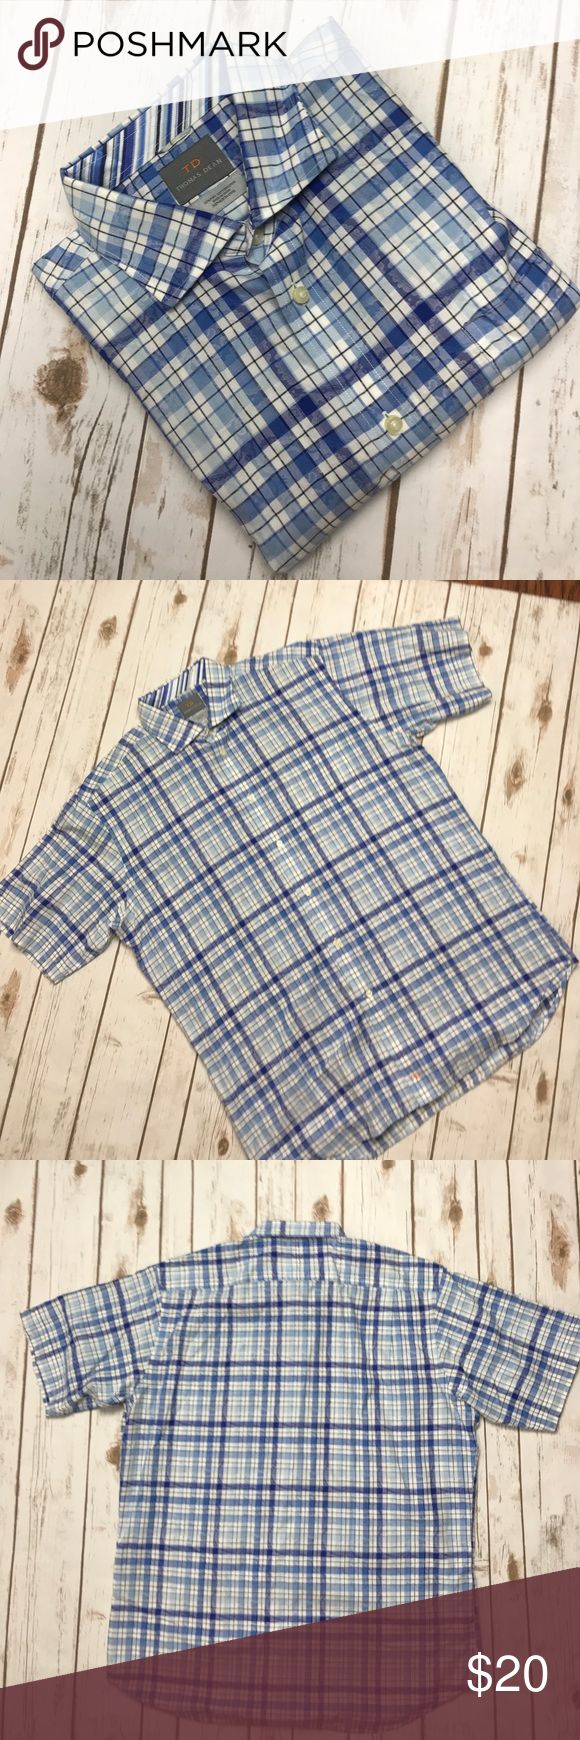 """Thomas Dean Men's plaid shirt L 100% Pima Cotton No rips . Great condition. 100% Cotton. Armpit to Armpit 24"""" Front Length 30"""" Back length 31 1/2"""". Please look at all the pictures before purchase. Thank you. Thomas Dean Shirts Casual Button Down Shirts"""